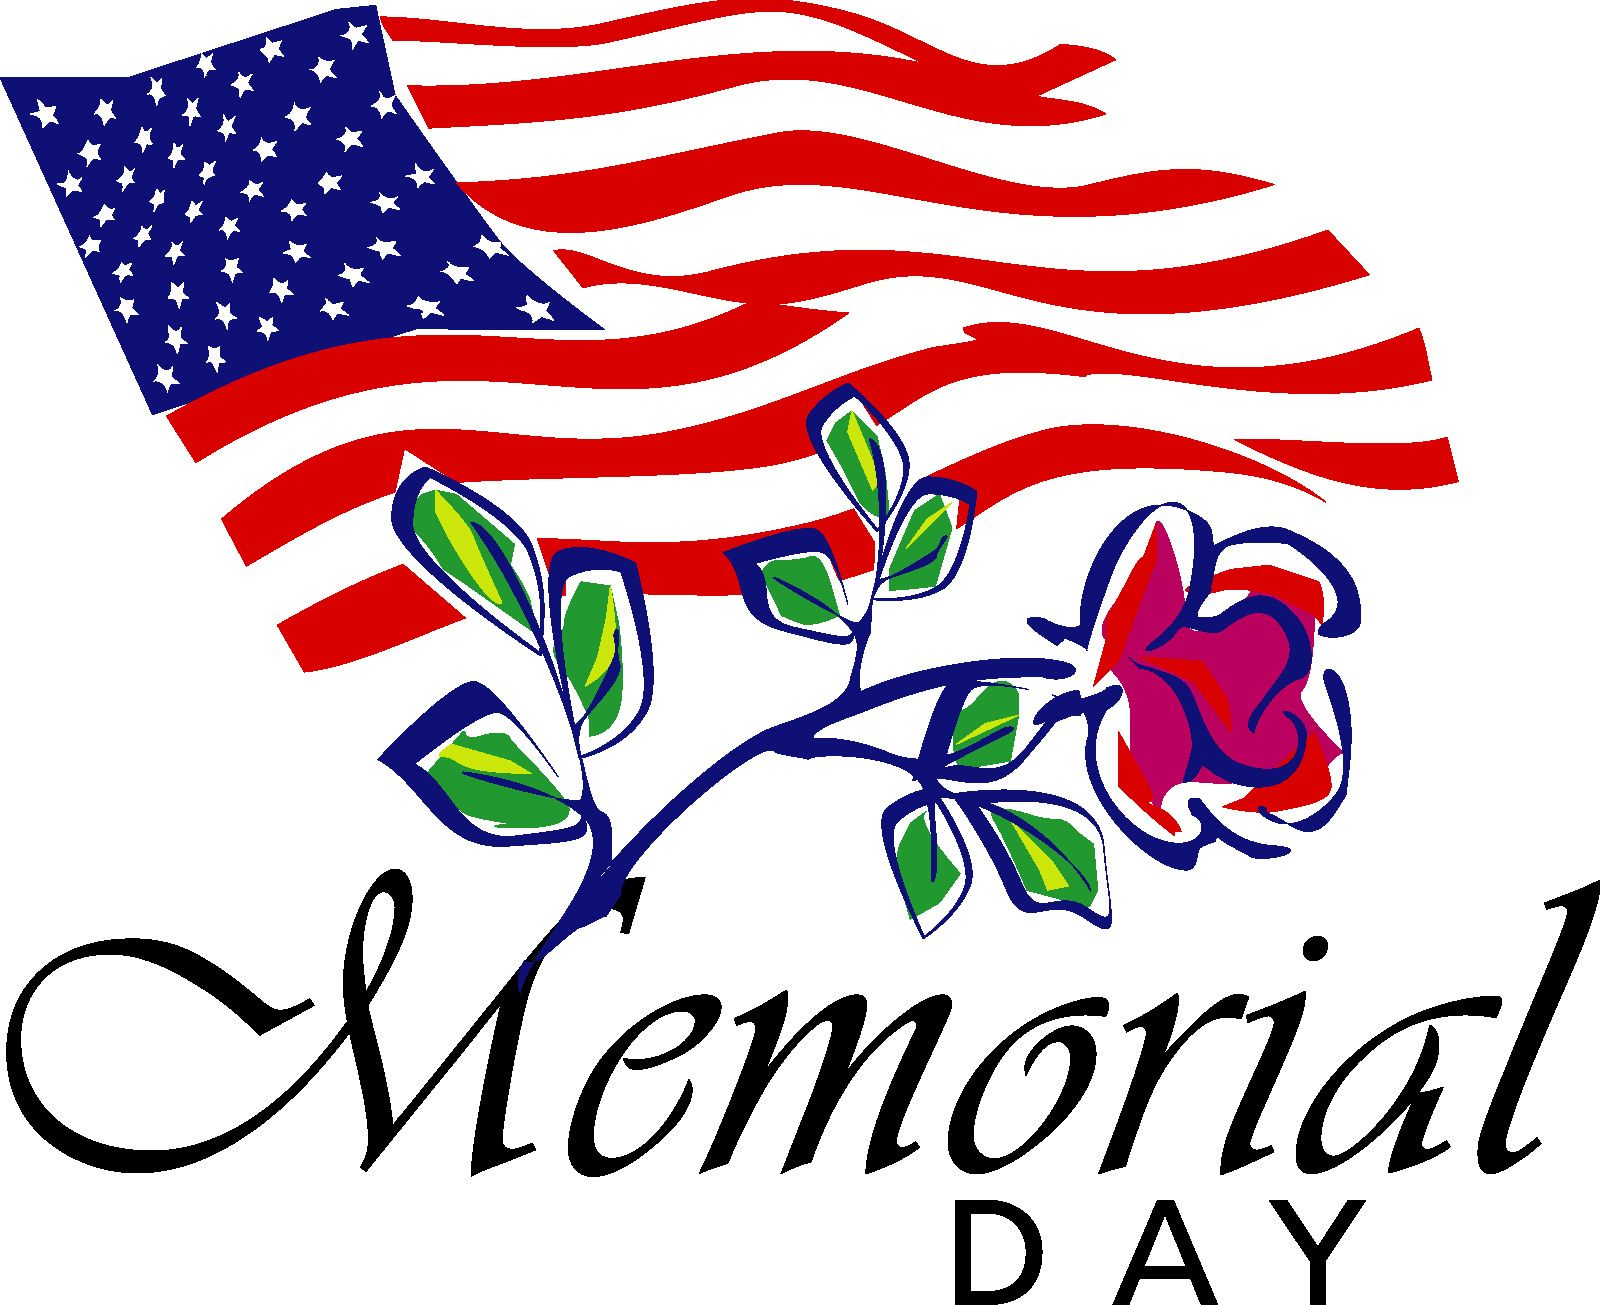 memorial day clip art free large images memorial day pinterest rh pinterest com memorial day clipart for kids memorial day clip art borders